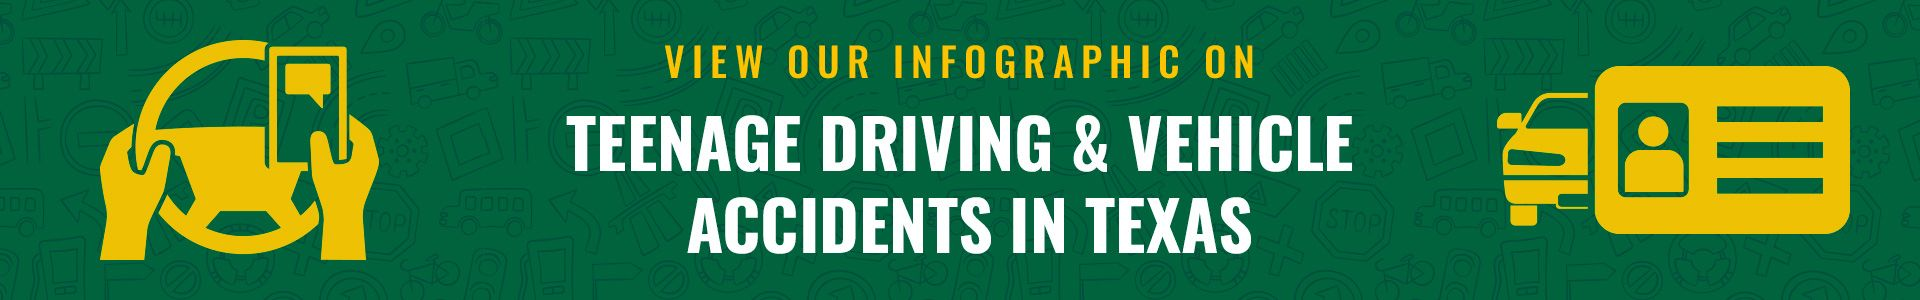 button for teenage driving infographic